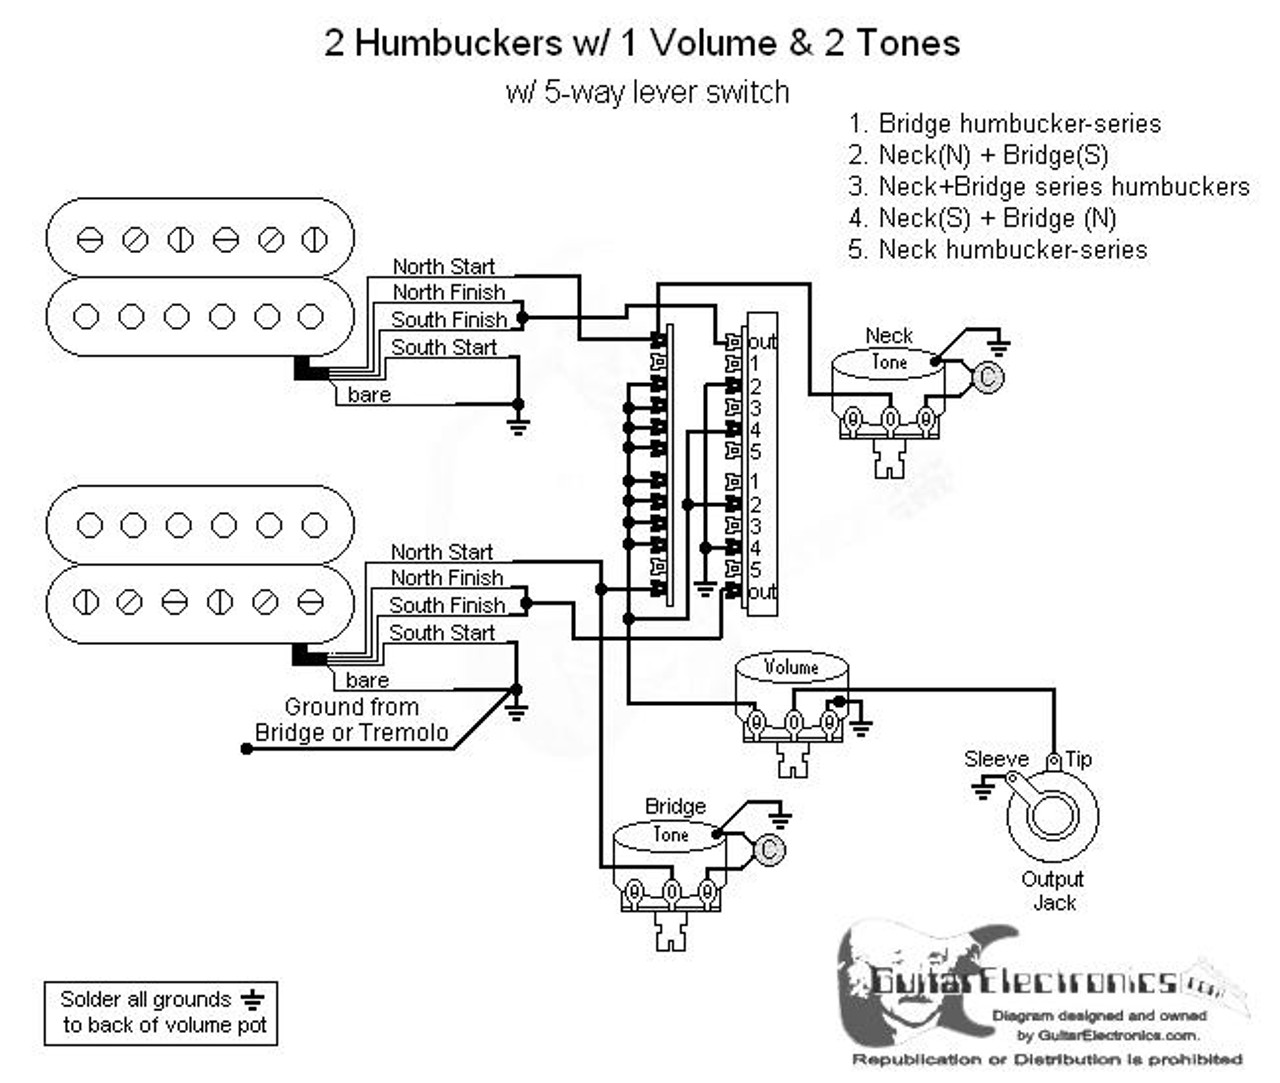 two humbucker w 1 volume and 2 tone 5 way switch wiring diagram 5-Way Guitar Switch Wiring 2 humbuckers 5 way lever switch 1 volume 2 tones 05